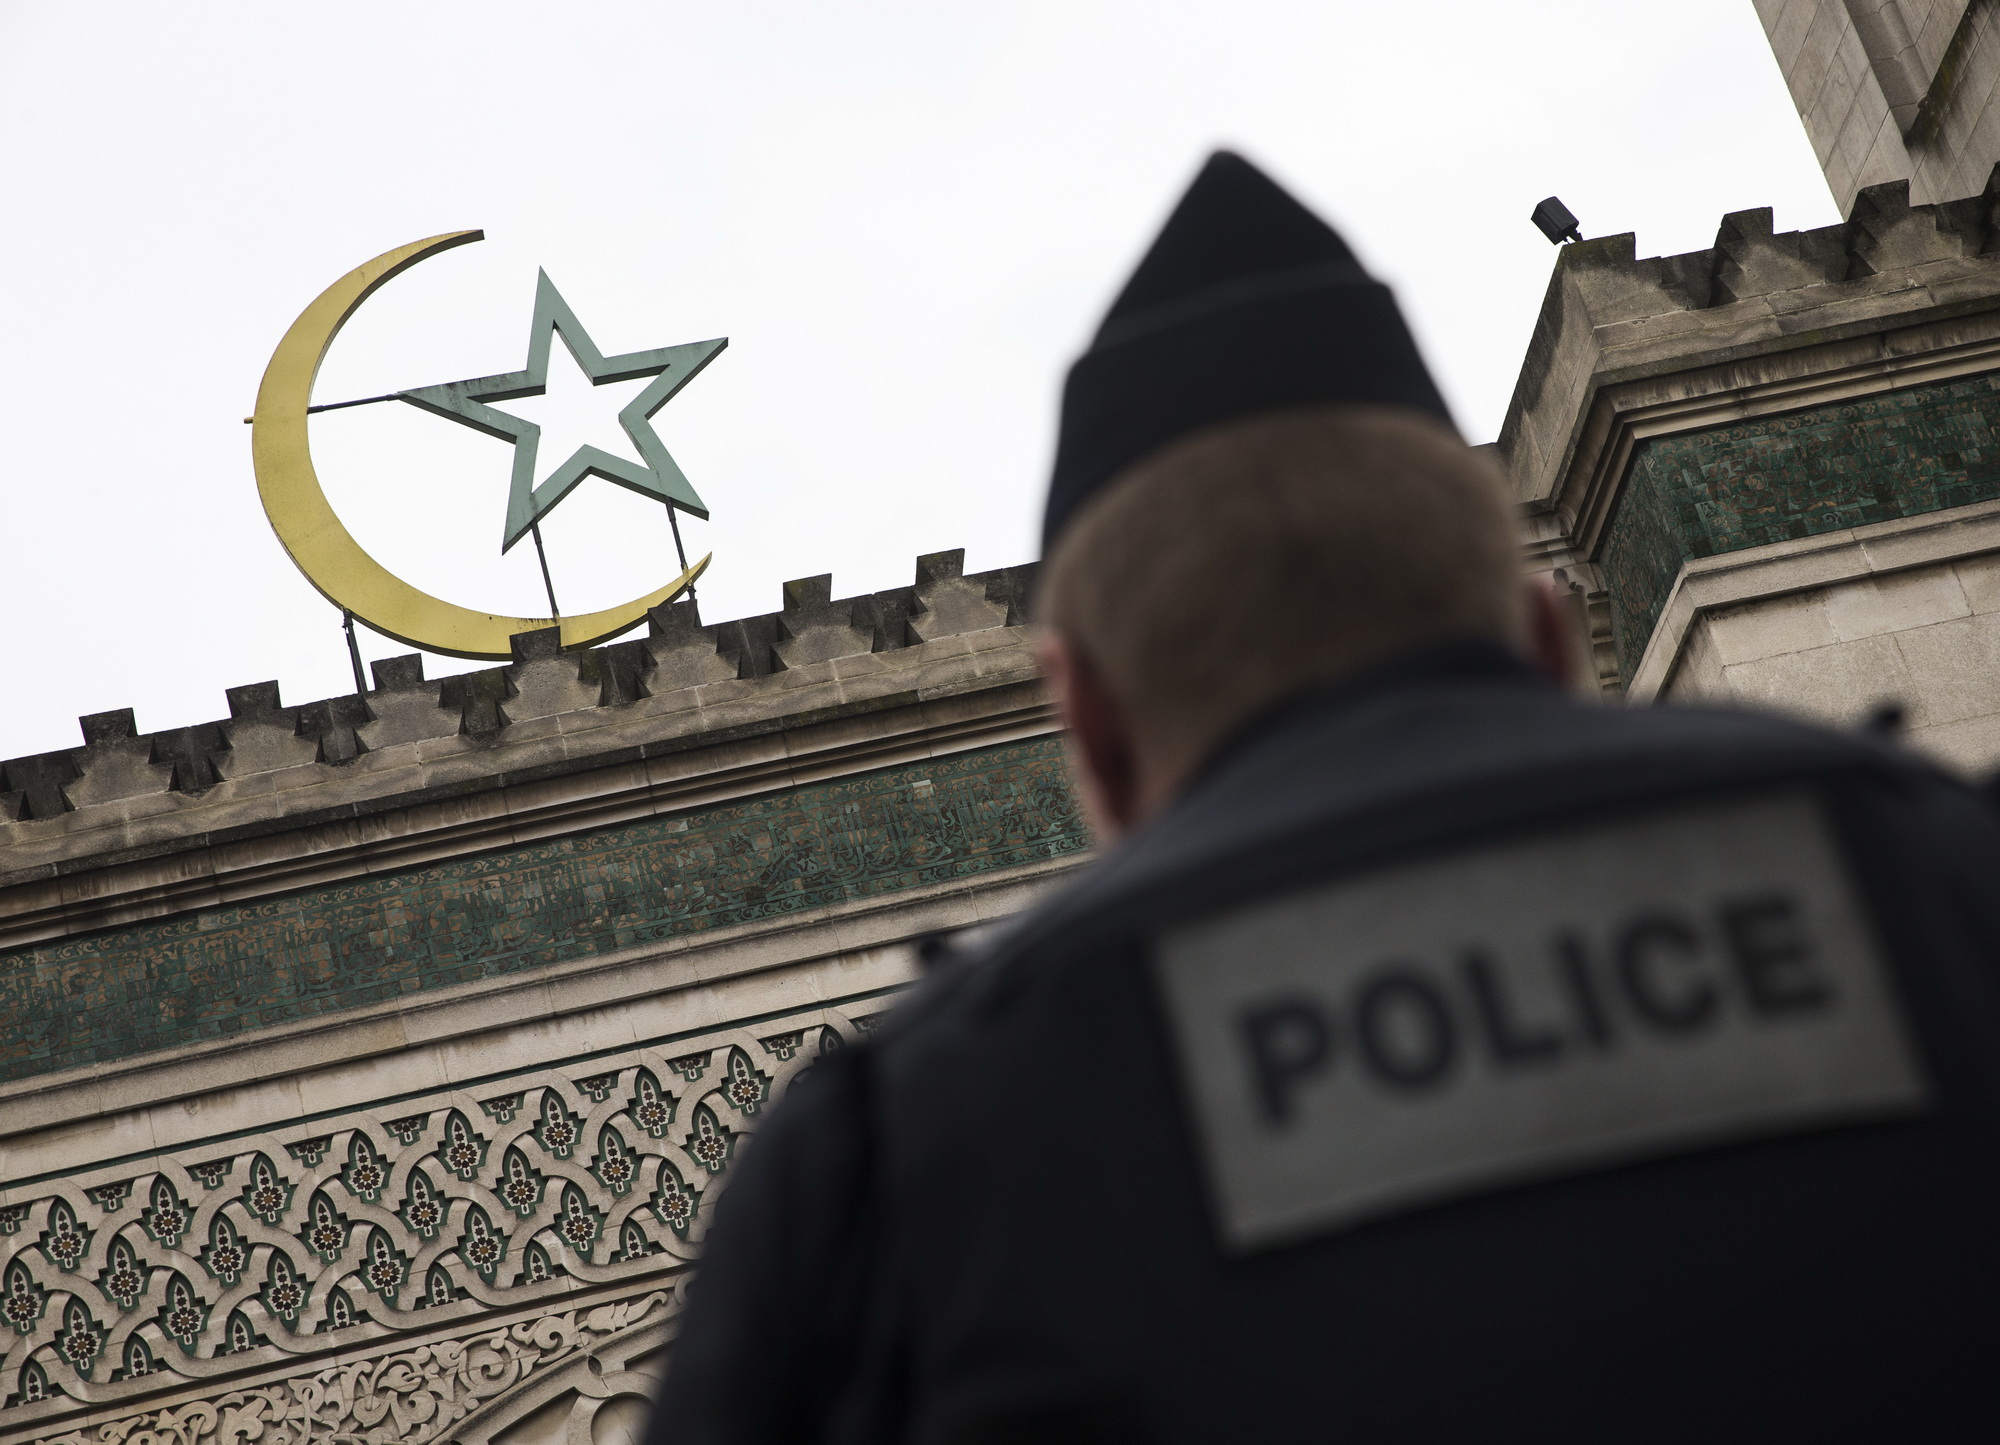 EU should focus on integration of minorities as an anti-terror measure